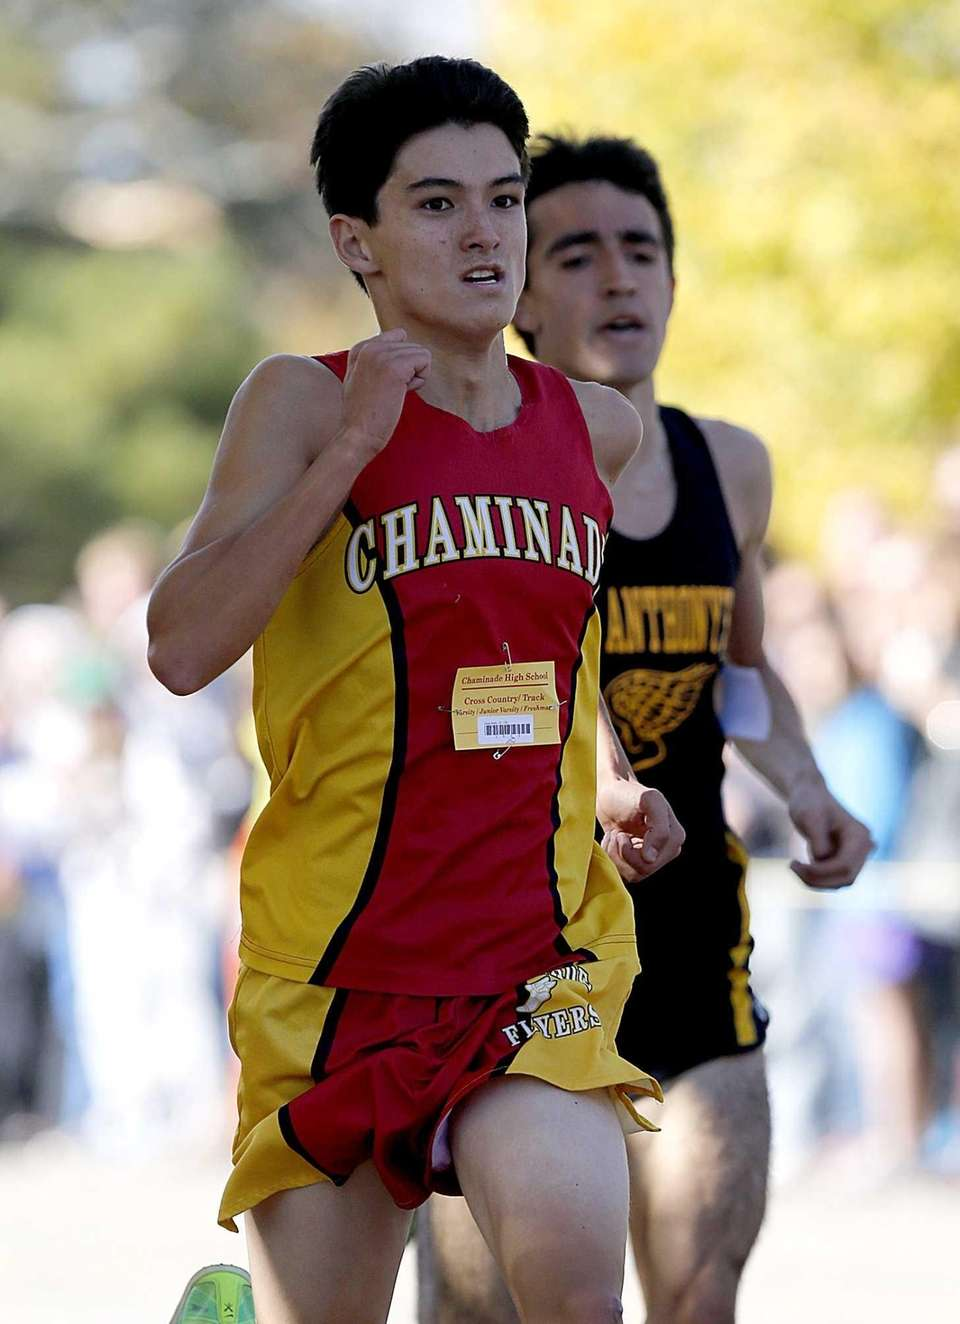 Chaminade's Sean Kelly overtakes St. Anthony's Louis Santelli